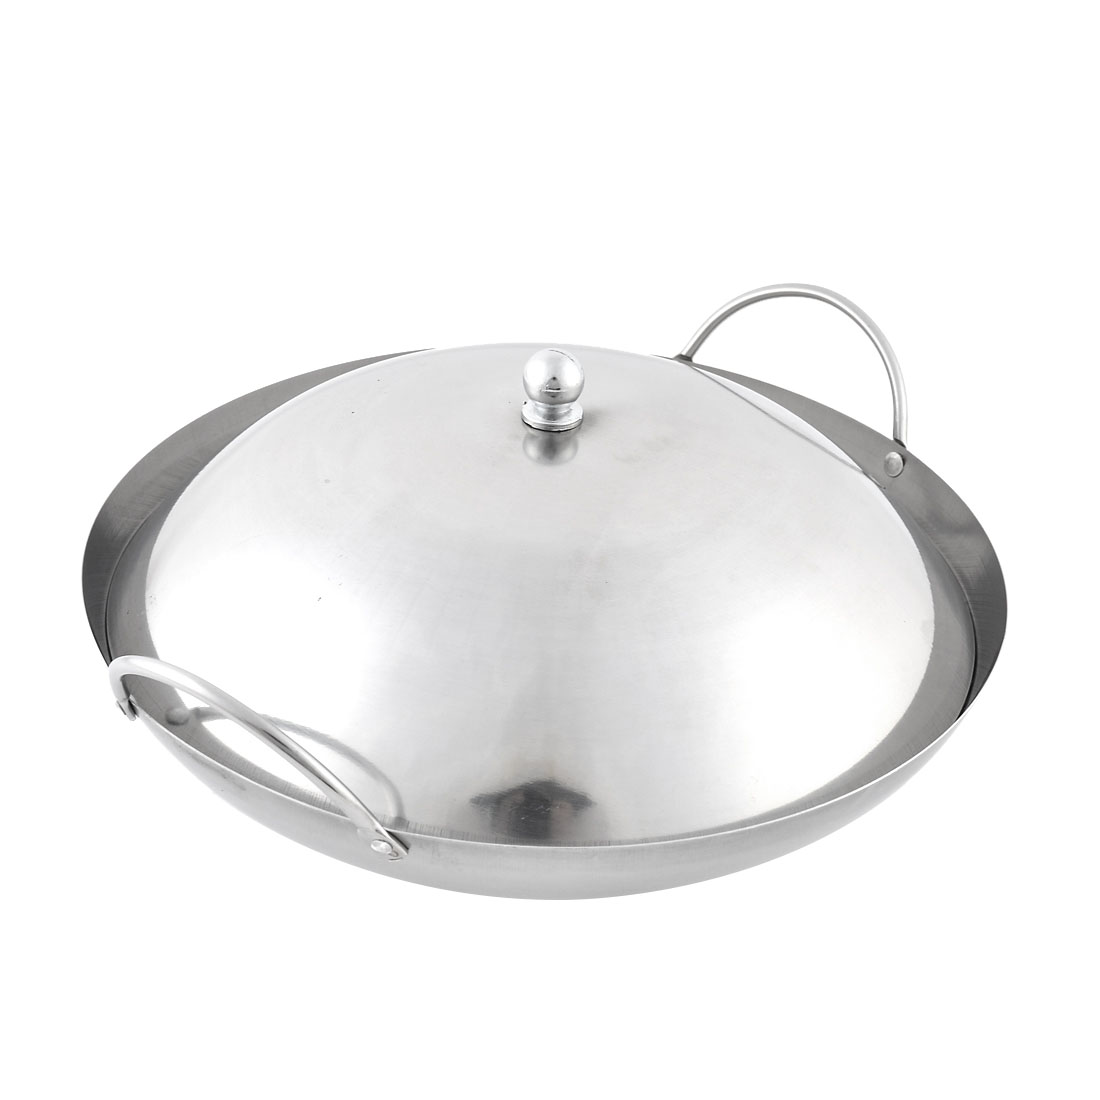 Home Restaurant Stainless Steel Chafing Dish Pot Silver Tone 24cm Diameter w Lid Cover